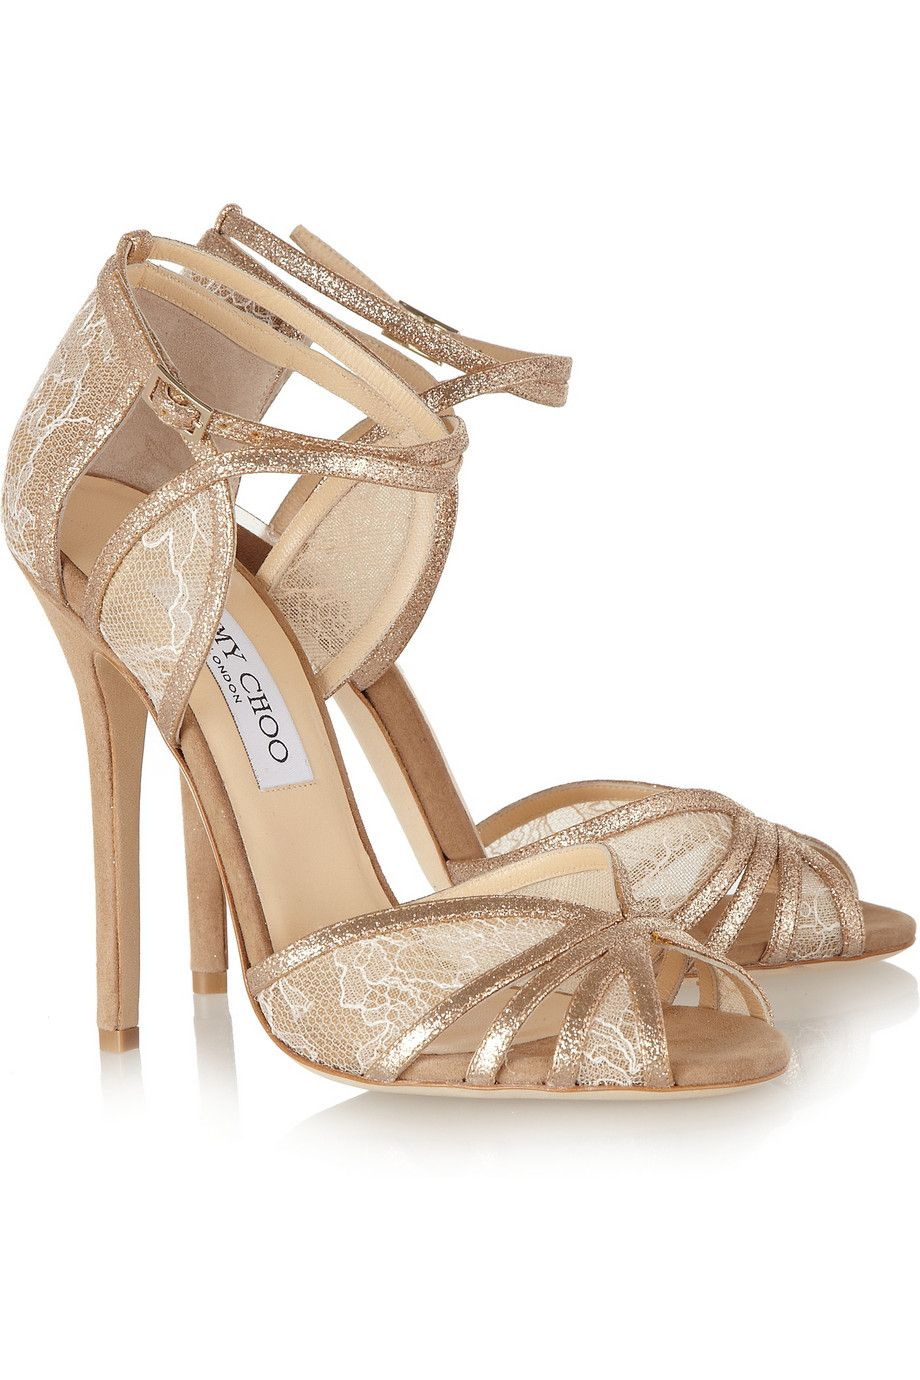 Chaussure Americaine Taille Ideas Shoes eD9W2HYEI